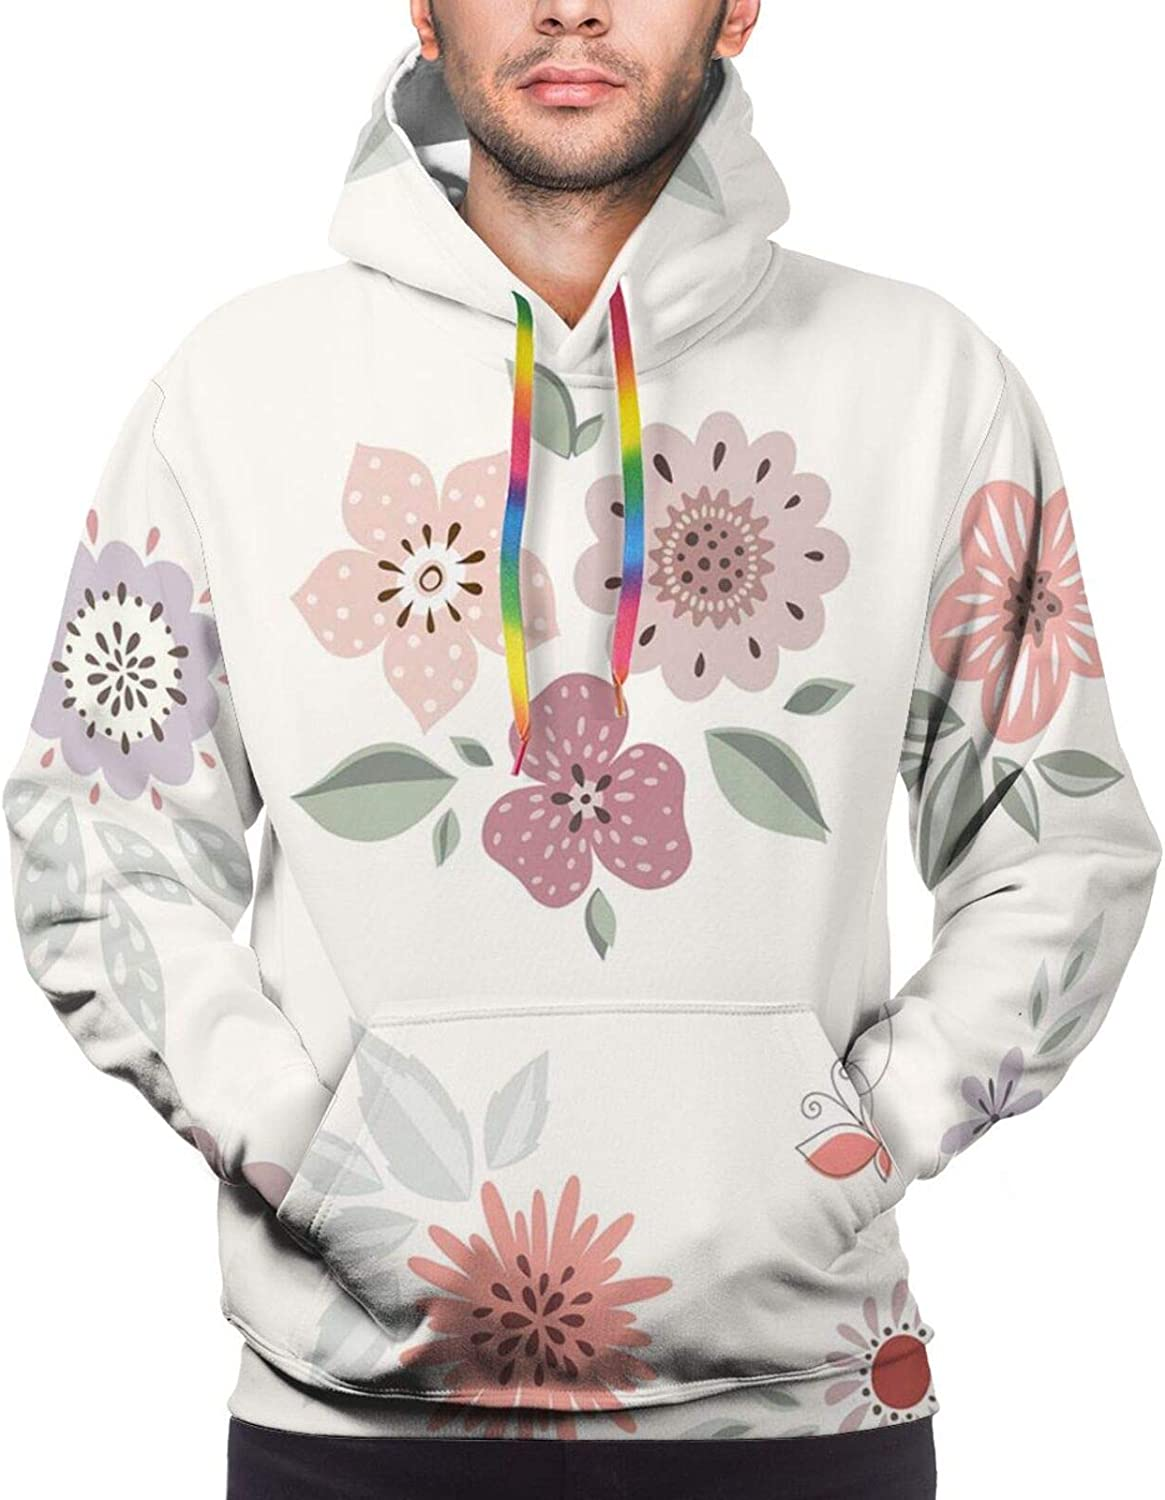 Men's Hoodies Sweatshirts,Charming and Continuous Flowers Leaves and Butterflies in Pastel Tones